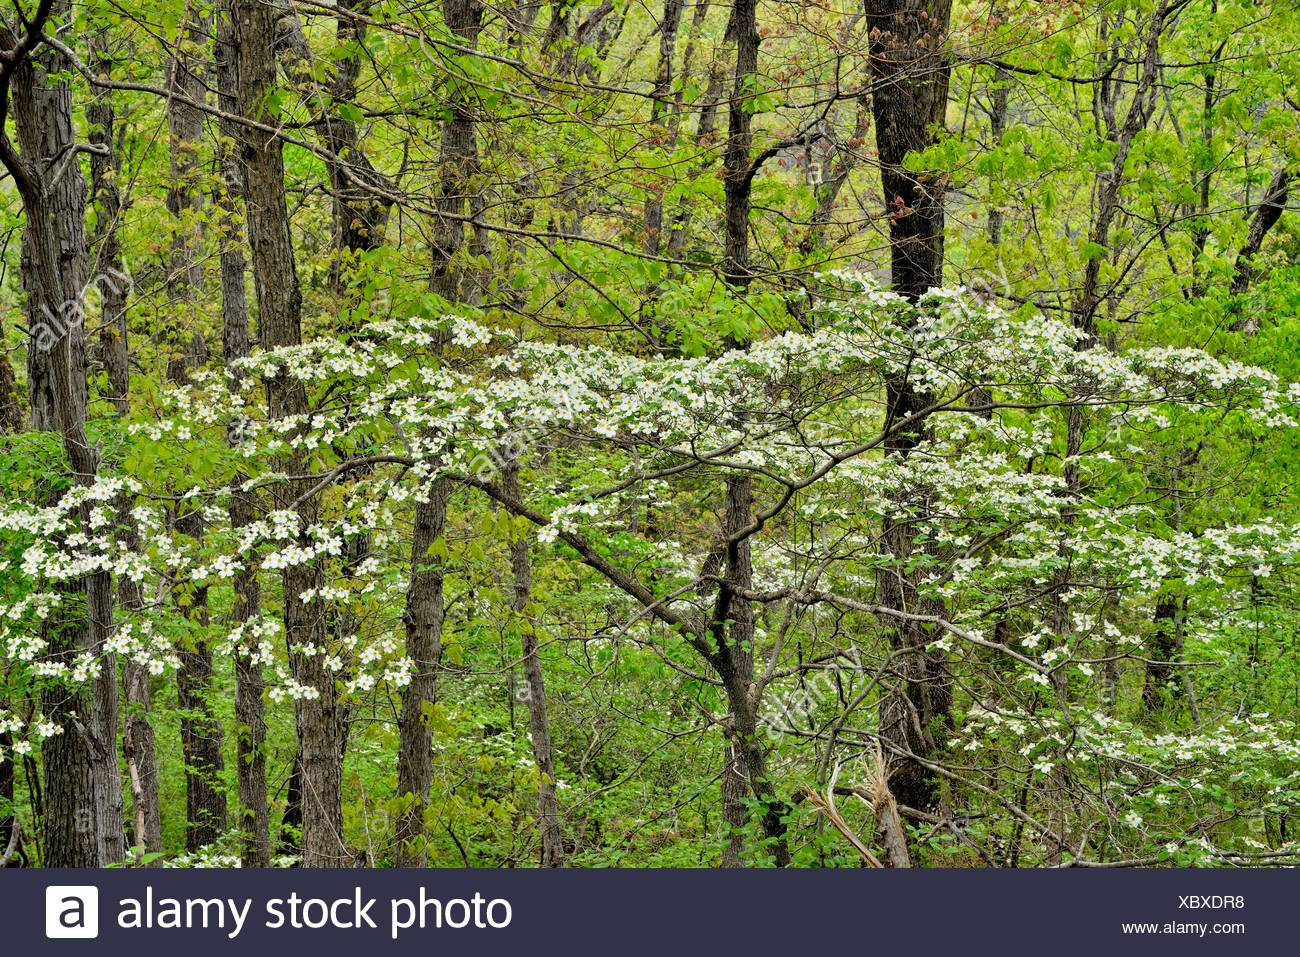 Dogwood Tree Flowering Arkansas Stock Photos & Dogwood Tree ...